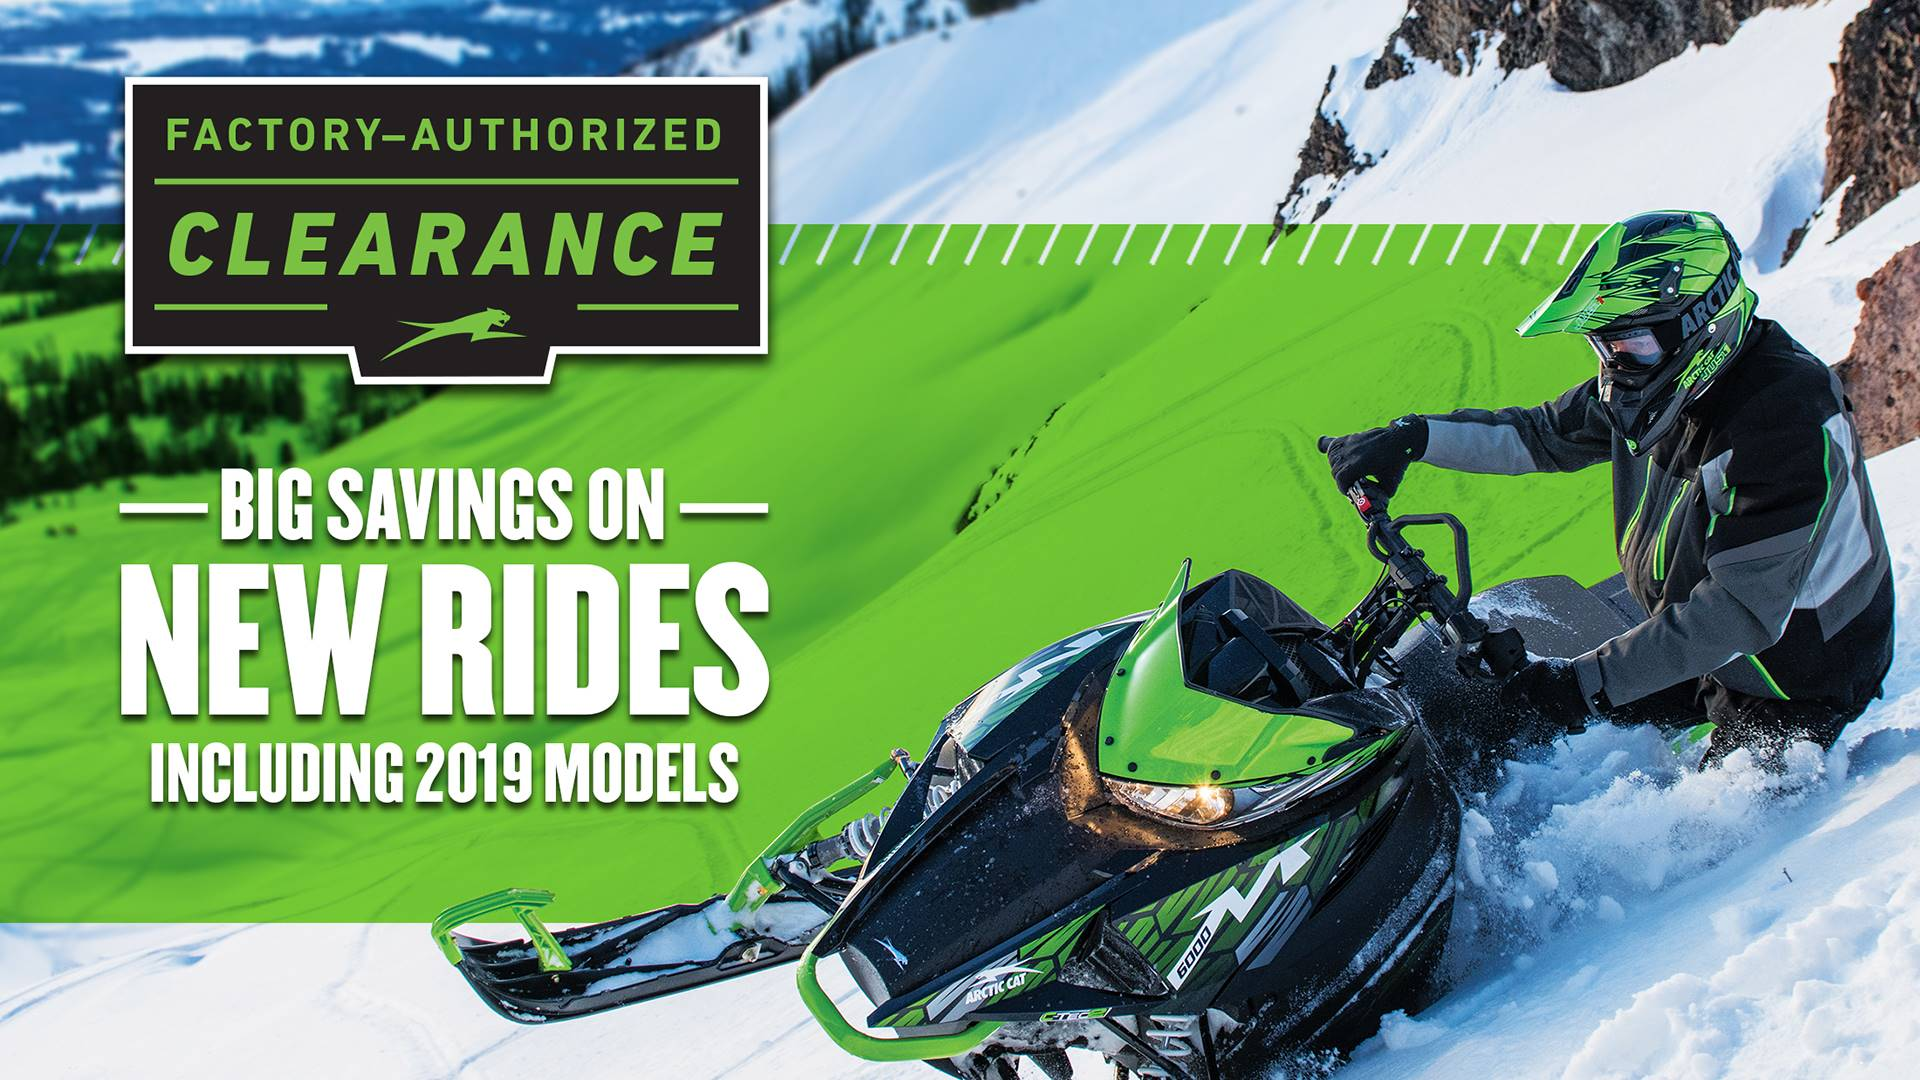 Arctic Cat - Factory-Authorized Clearance